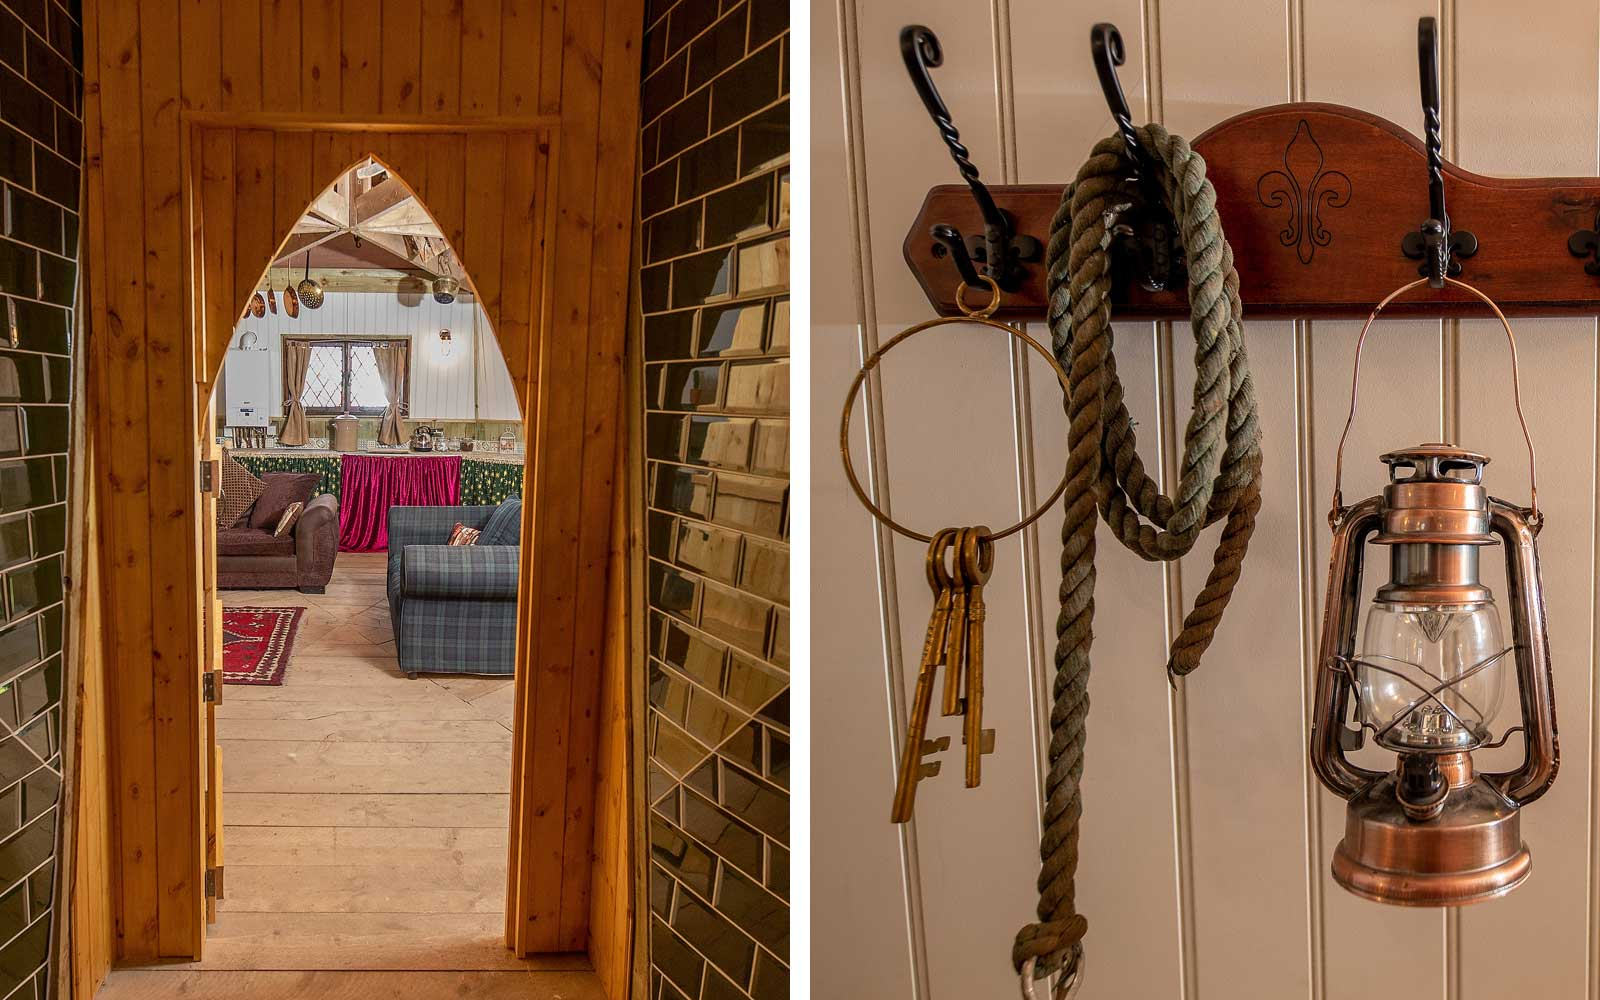 Holiday Home Inspired By Hagrid's Hut Opens In North Yorkshire, UK